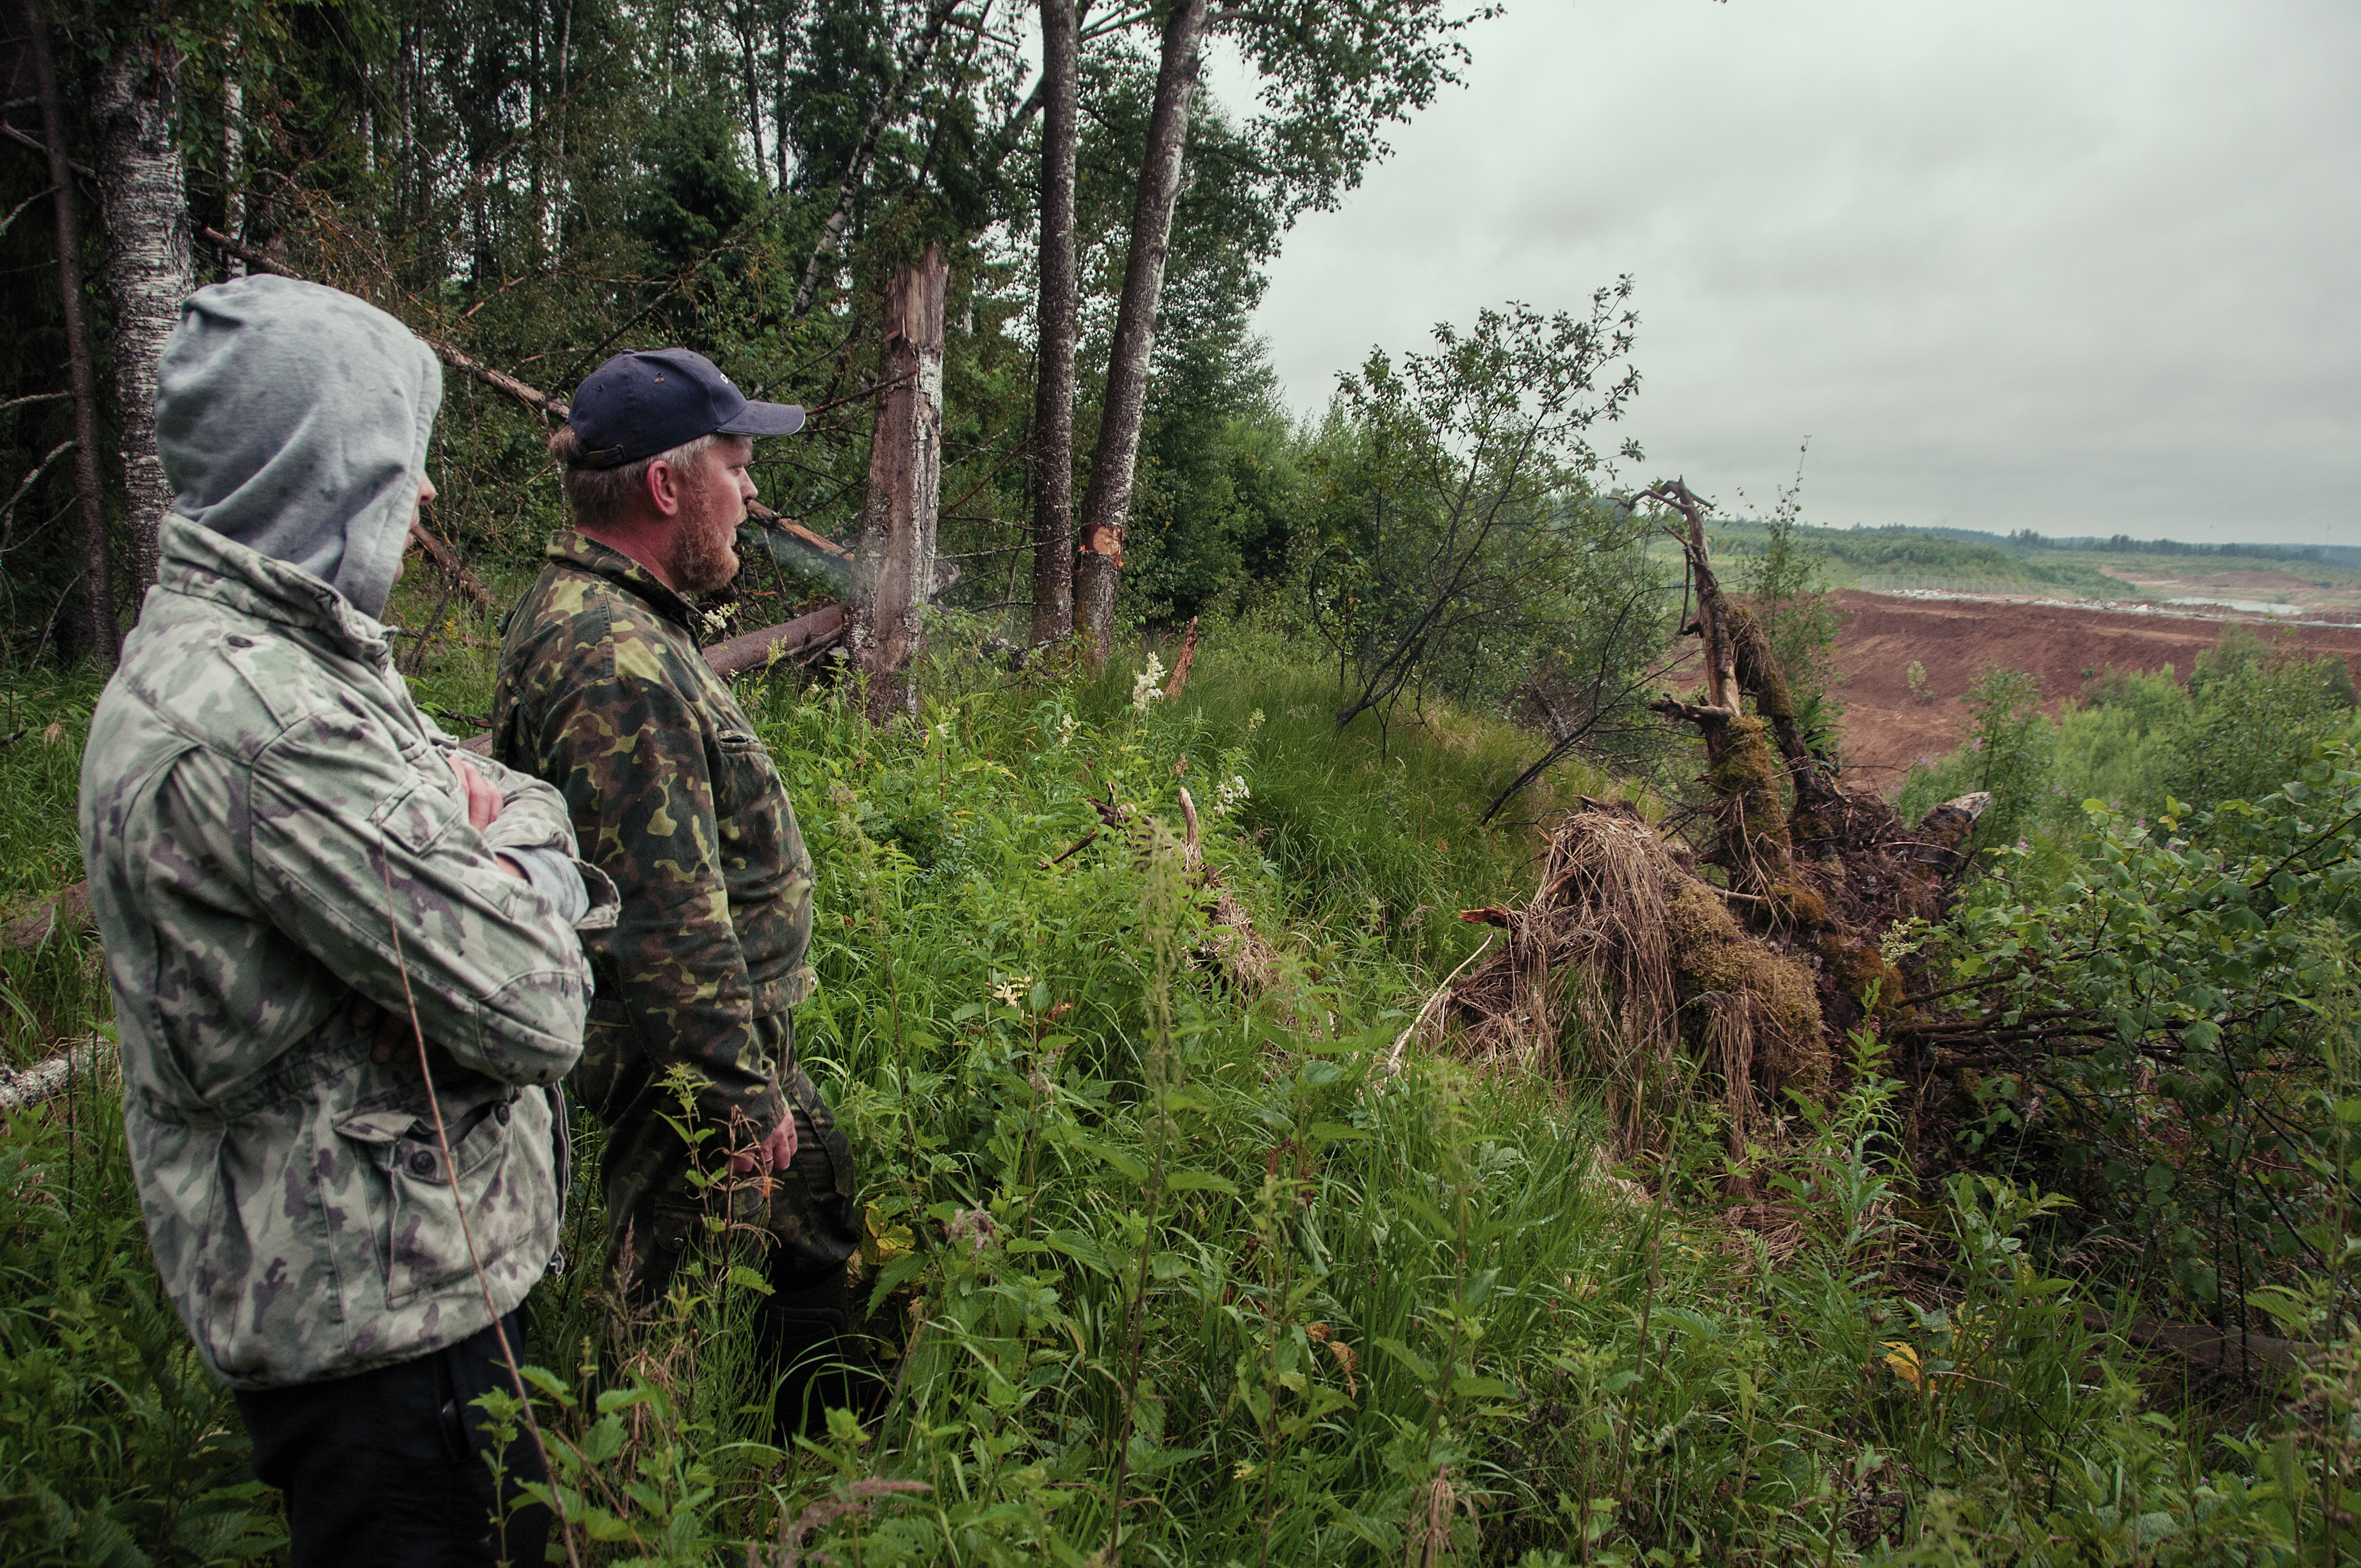 Kirill Artyukhov and a fellow activist stand at the edge of the forest overlooking the dumping site.